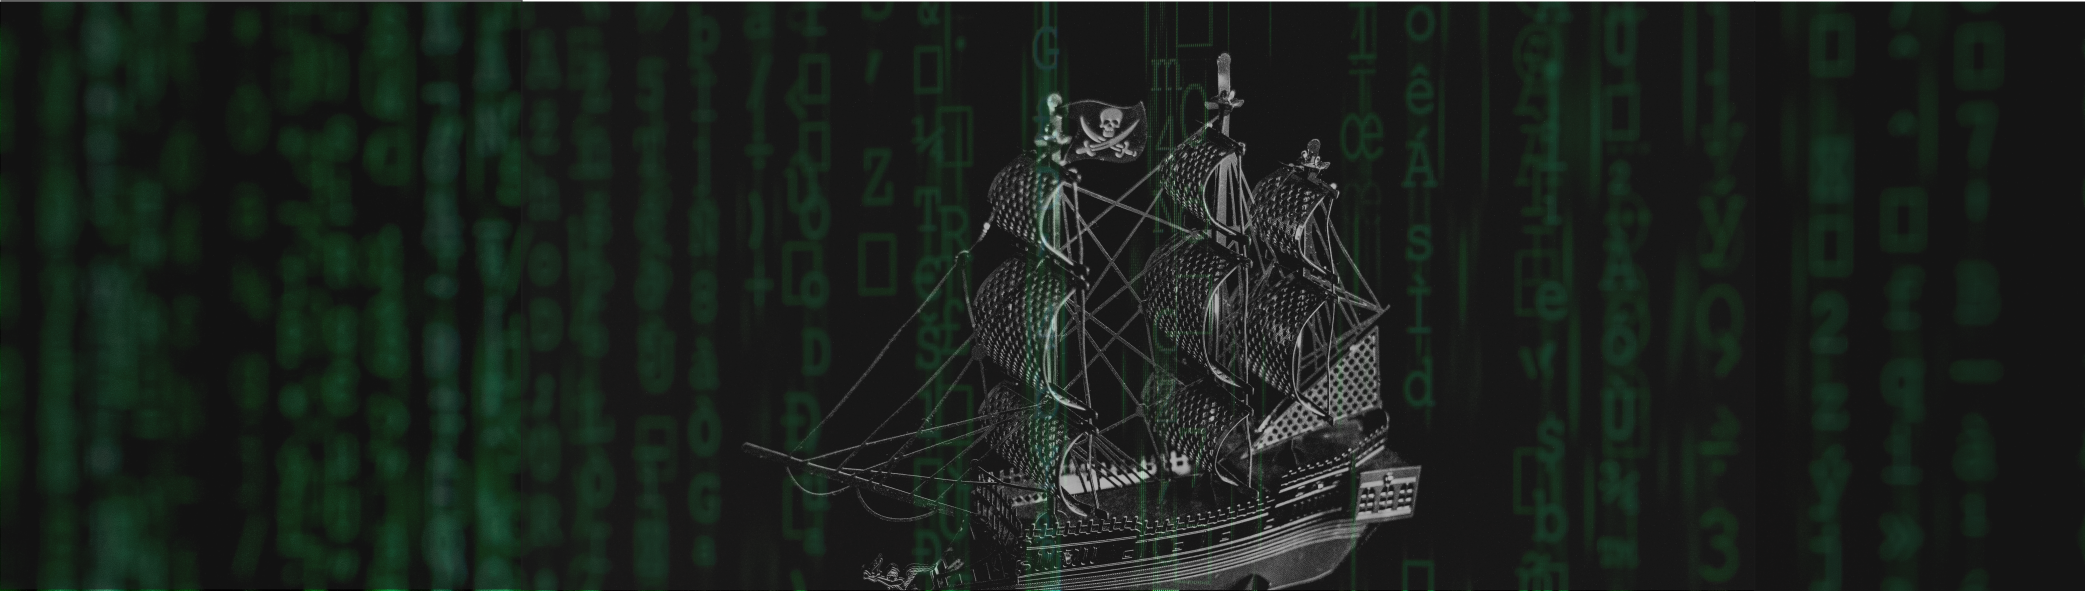 /cryptocurrencies-promote-secure-decentralization-or-support-cyber-piracy-the-truth-b7v330v feature image